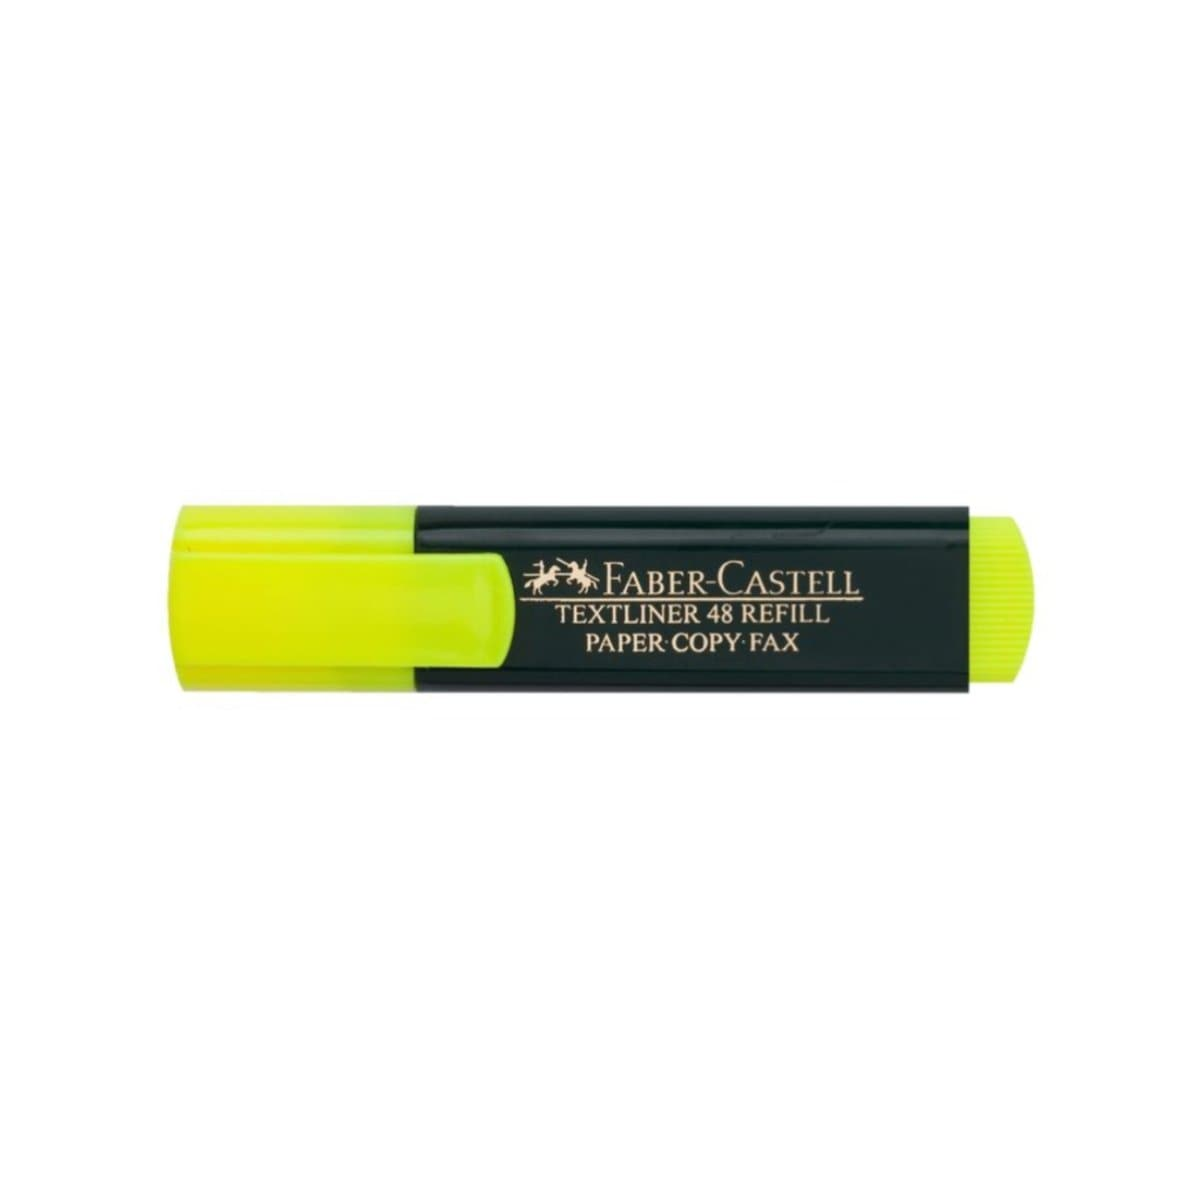 Faber Castell Highlighter, Textliner 48, Yellow